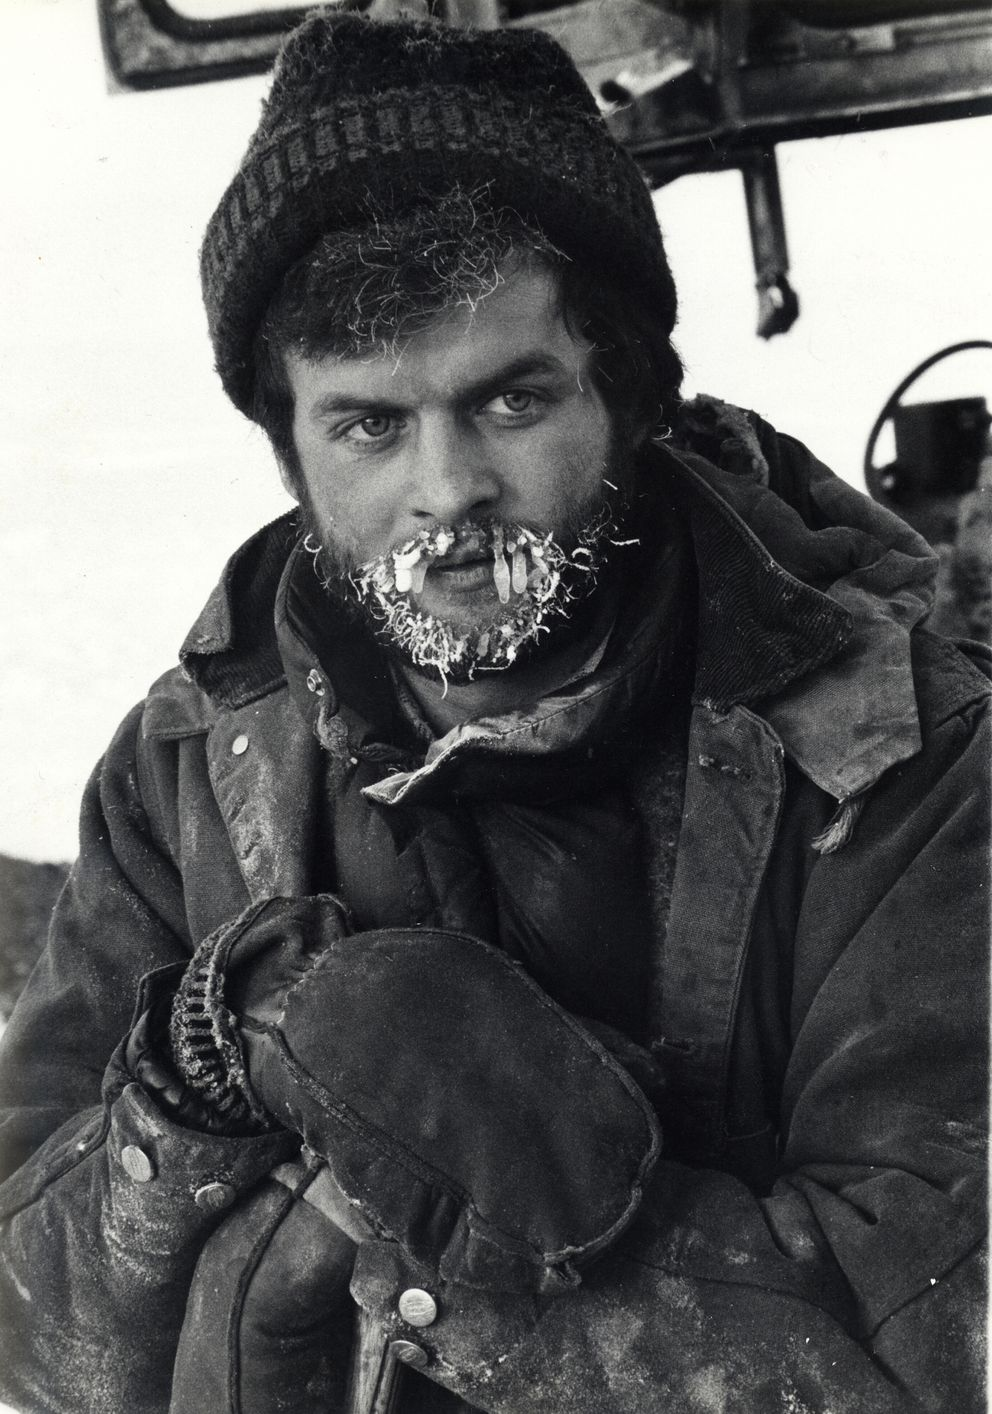 Jim Dore is pictured Jan. 30, 1975, during his first winter working at Prudhoe Bay. (Sarah Webb Barrell)